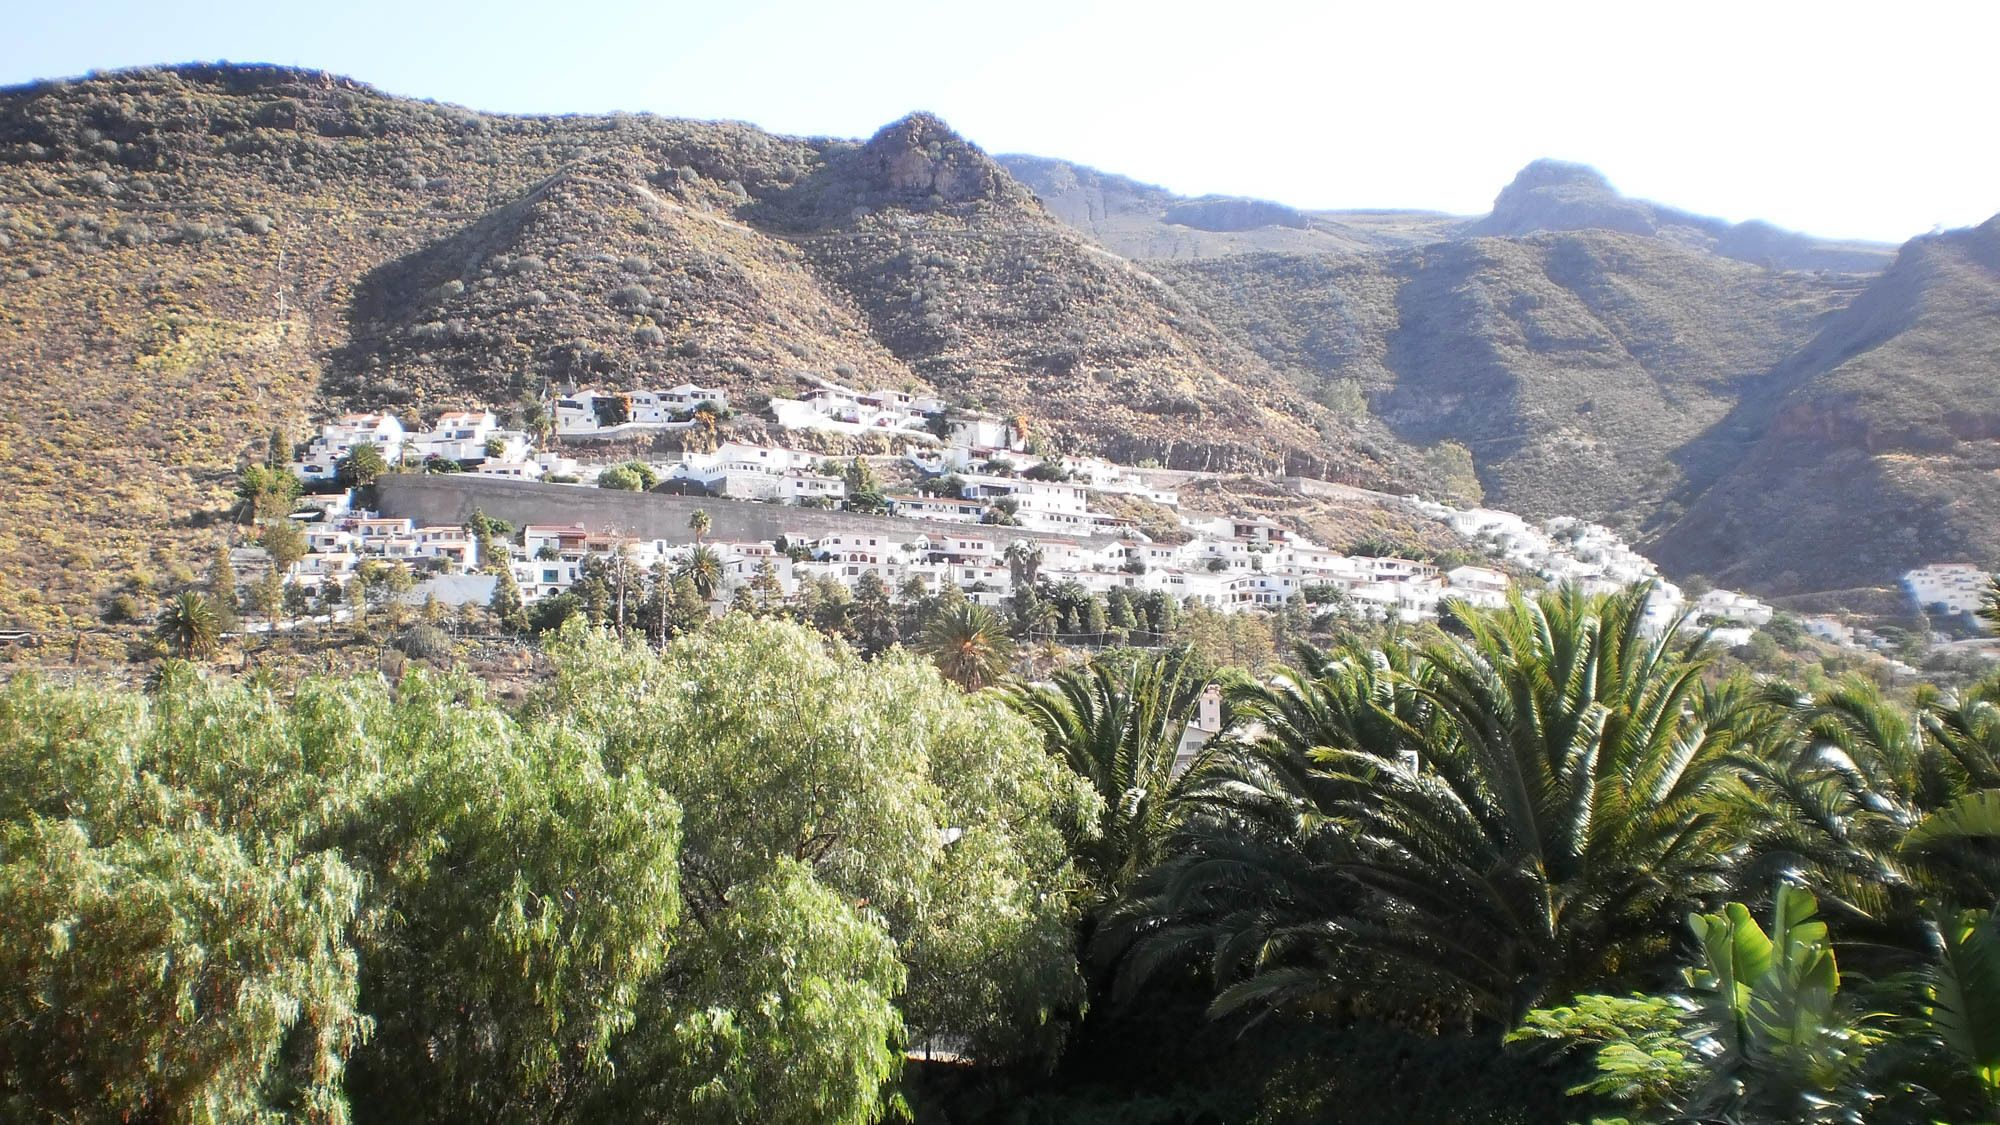 view of a hillside town in Gran Canaria